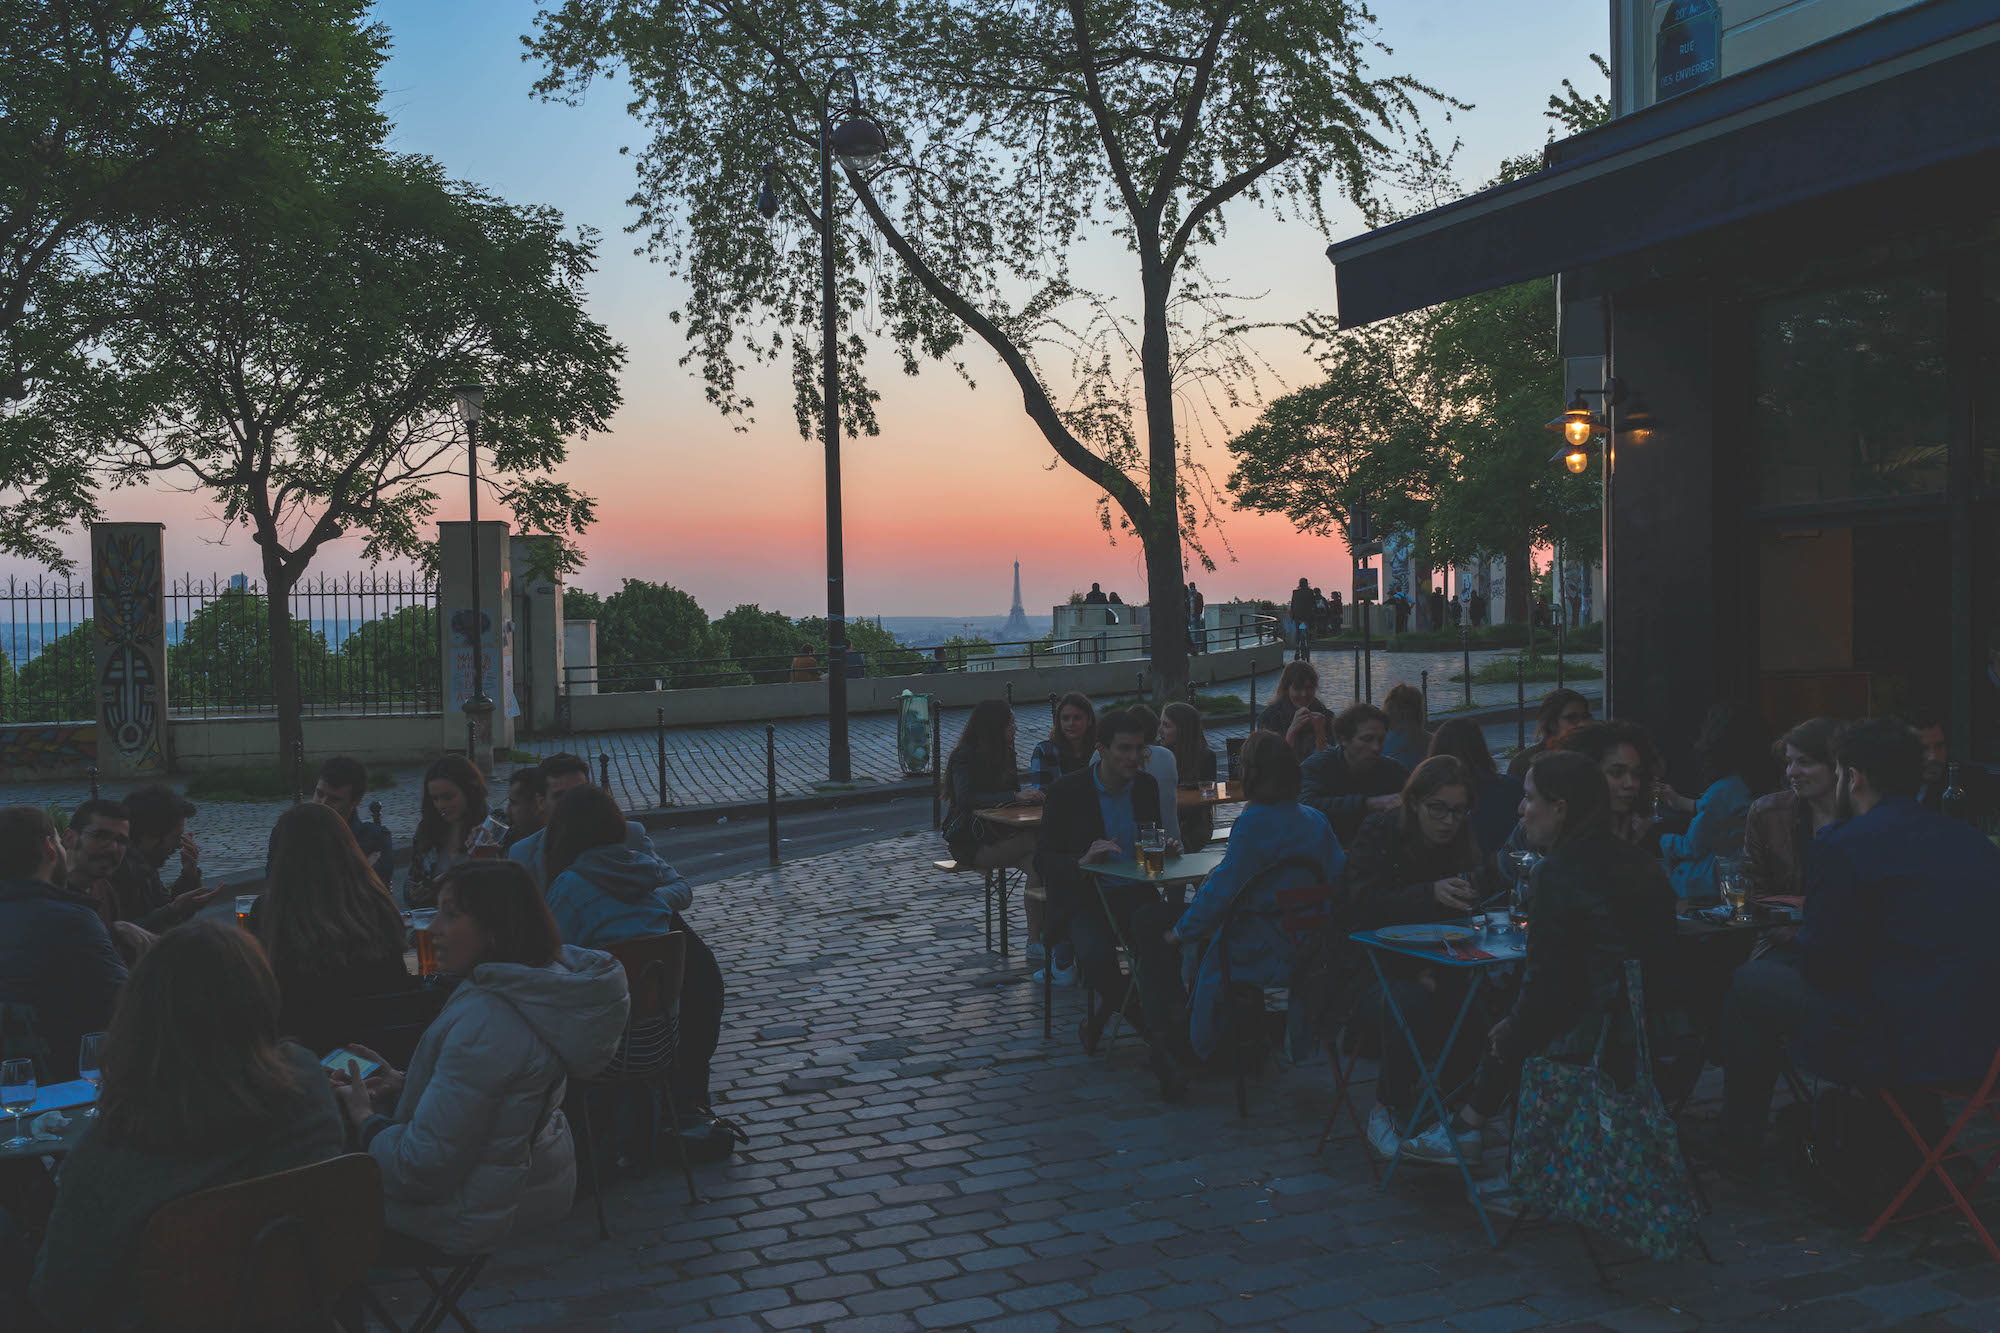 Living in Paris is best in summer when everyone's out on café terraces drinking wine with sunset views of the Eiffel Tower.